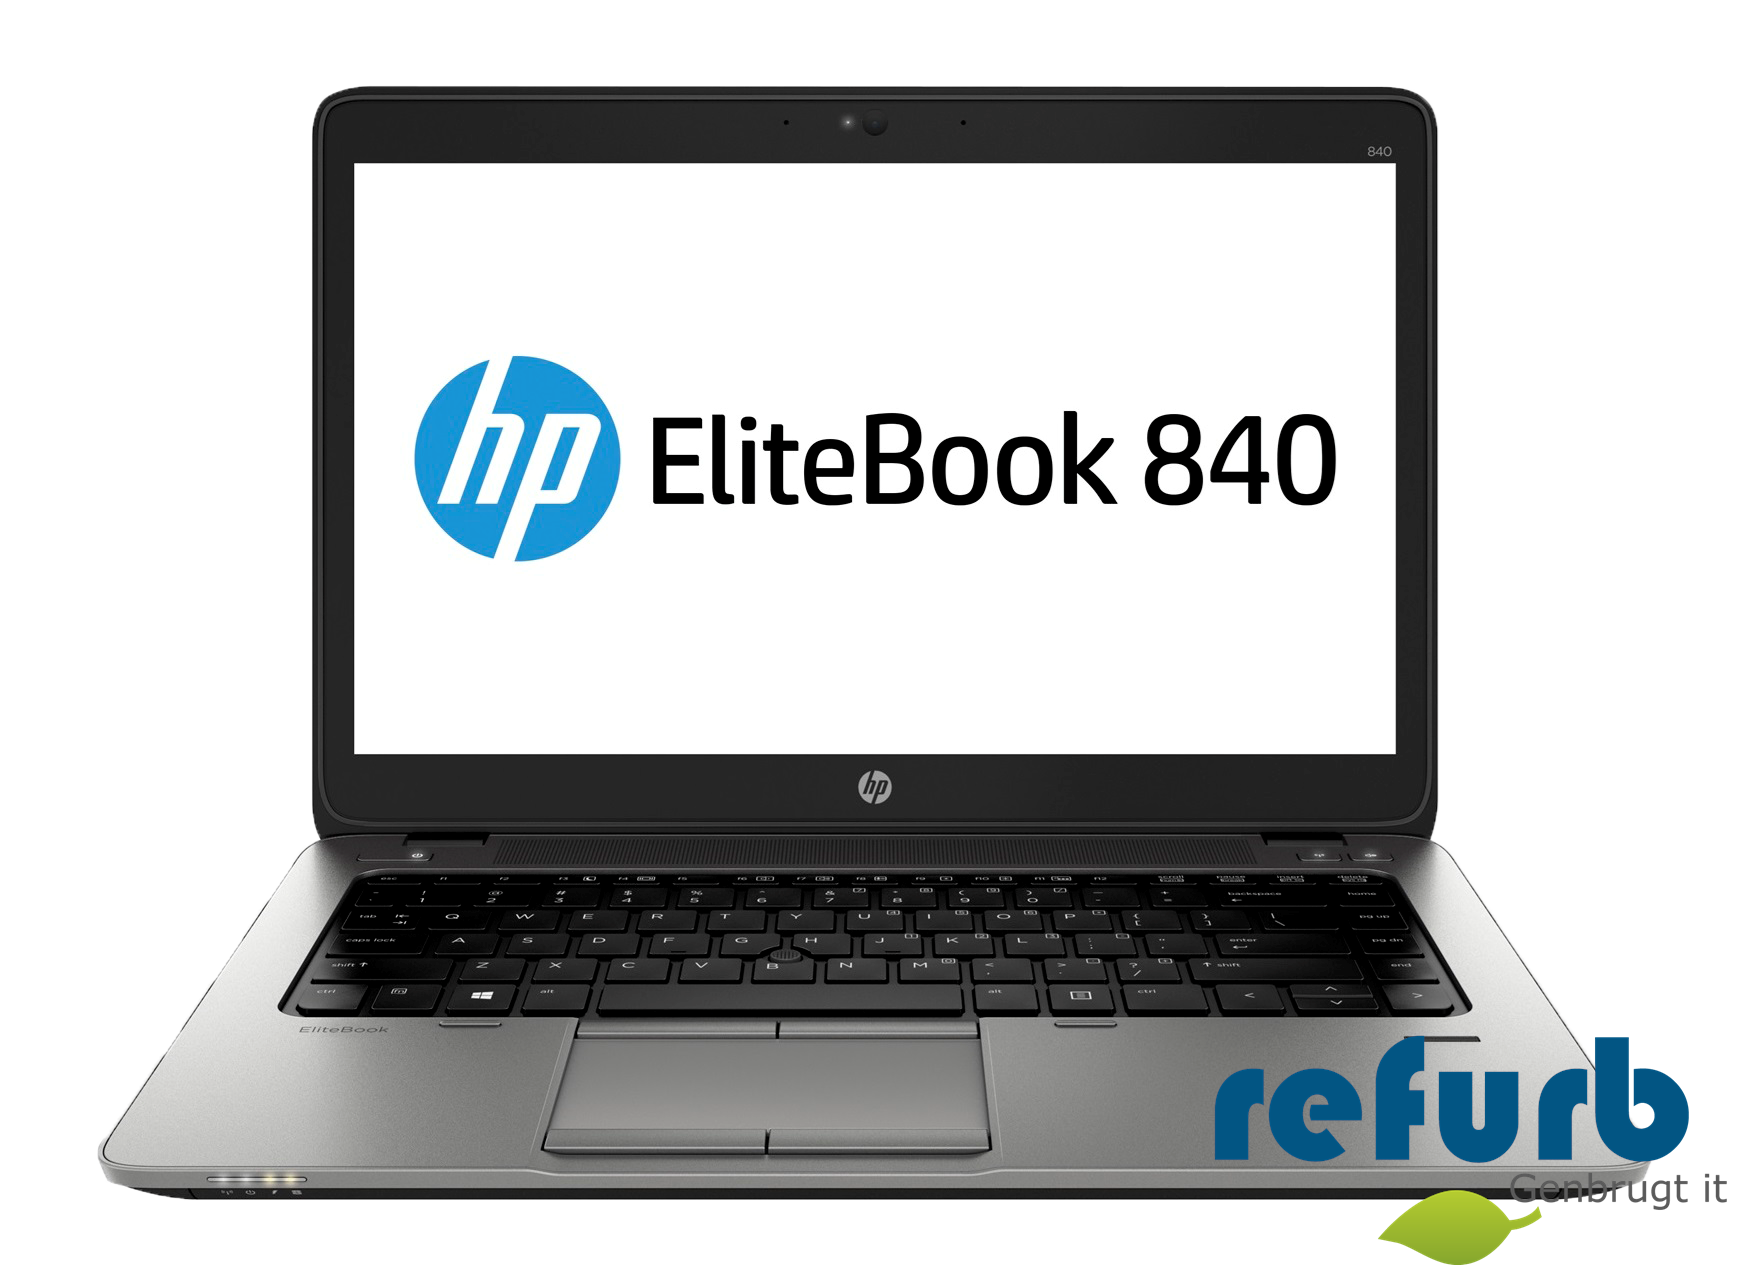 Hp elitebook 840 g1 fra Hp fra refurb